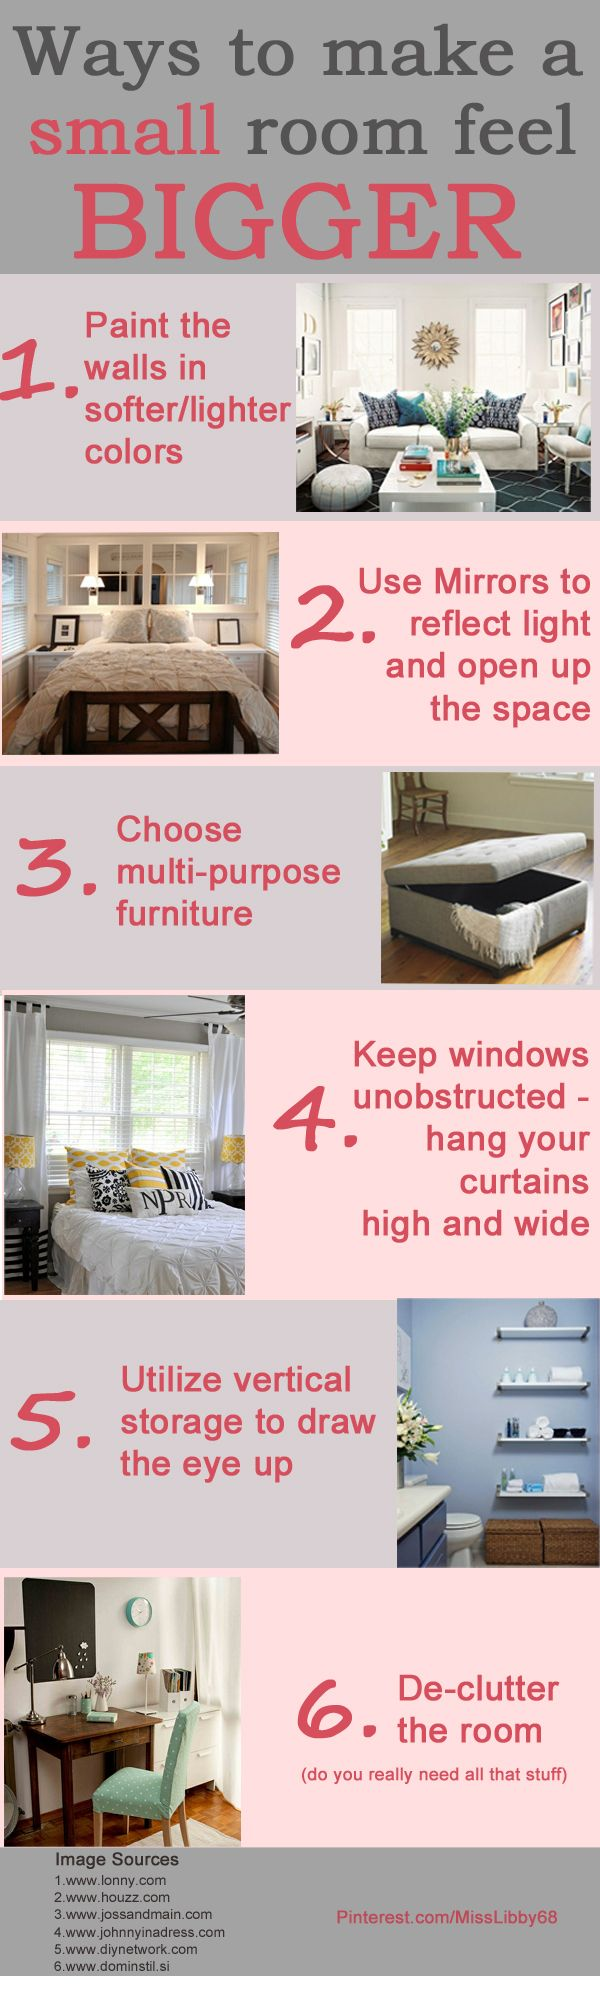 Ways to make a small room feel bigger    #smallspaces #cleverIdeas #infographic